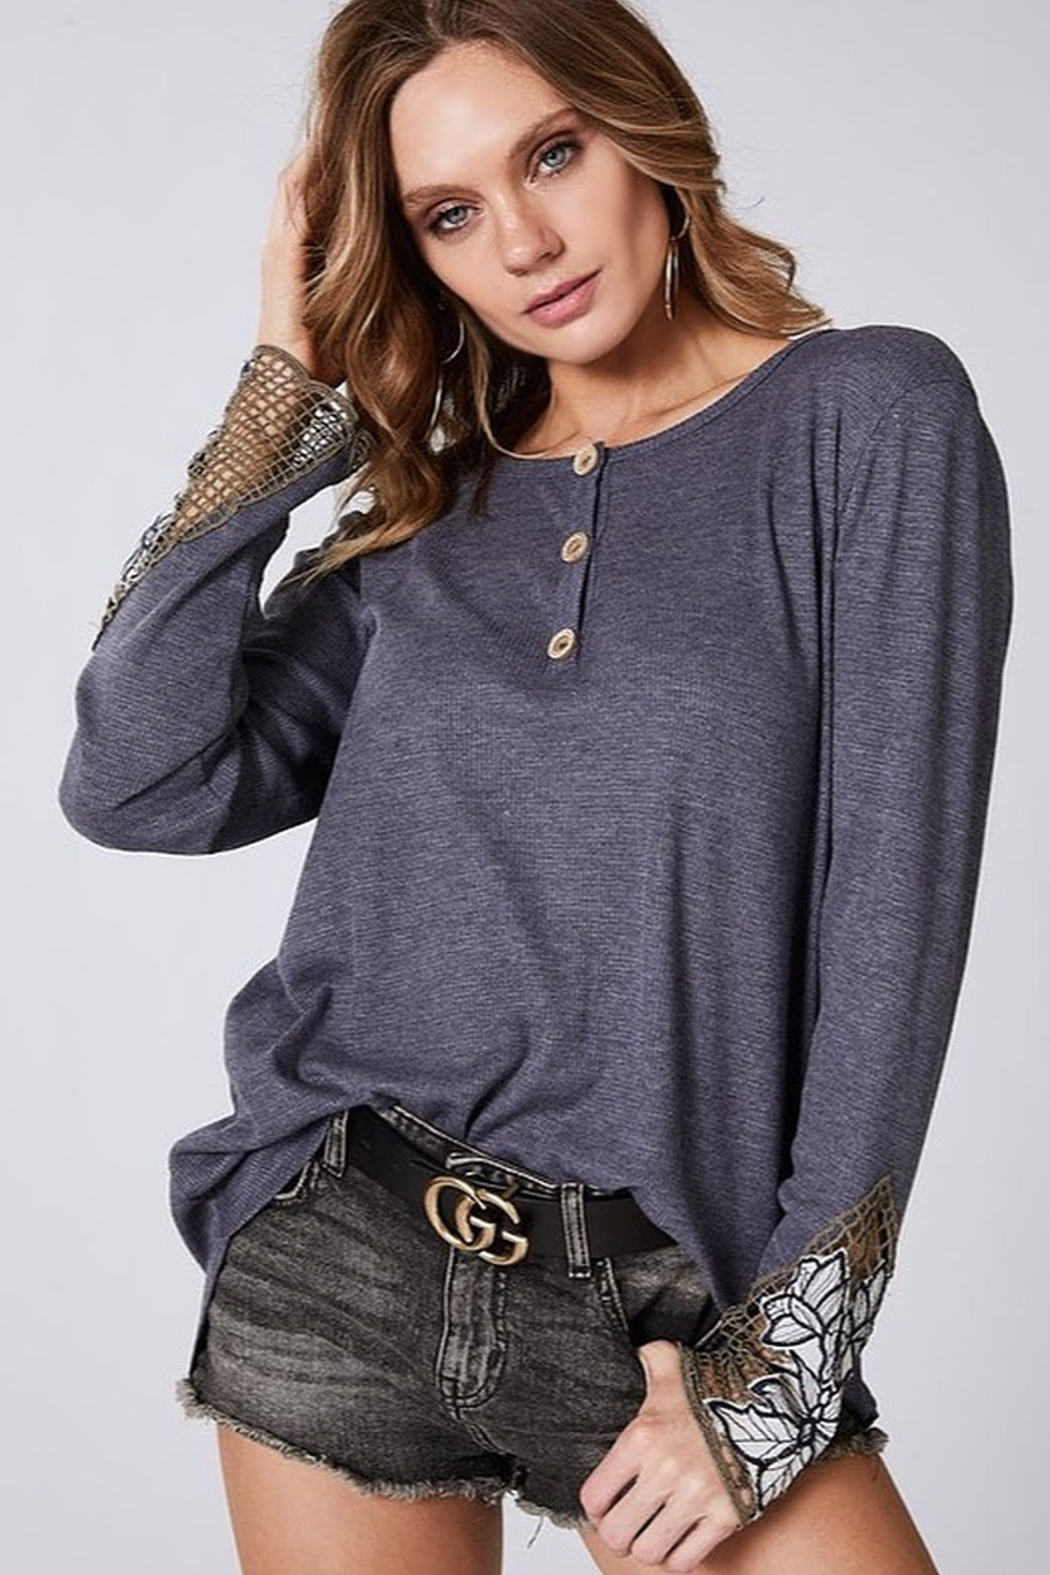 Bibi THERMAL KNIT TOP WITH BUTTONED FRONT PLACKET - Main Image